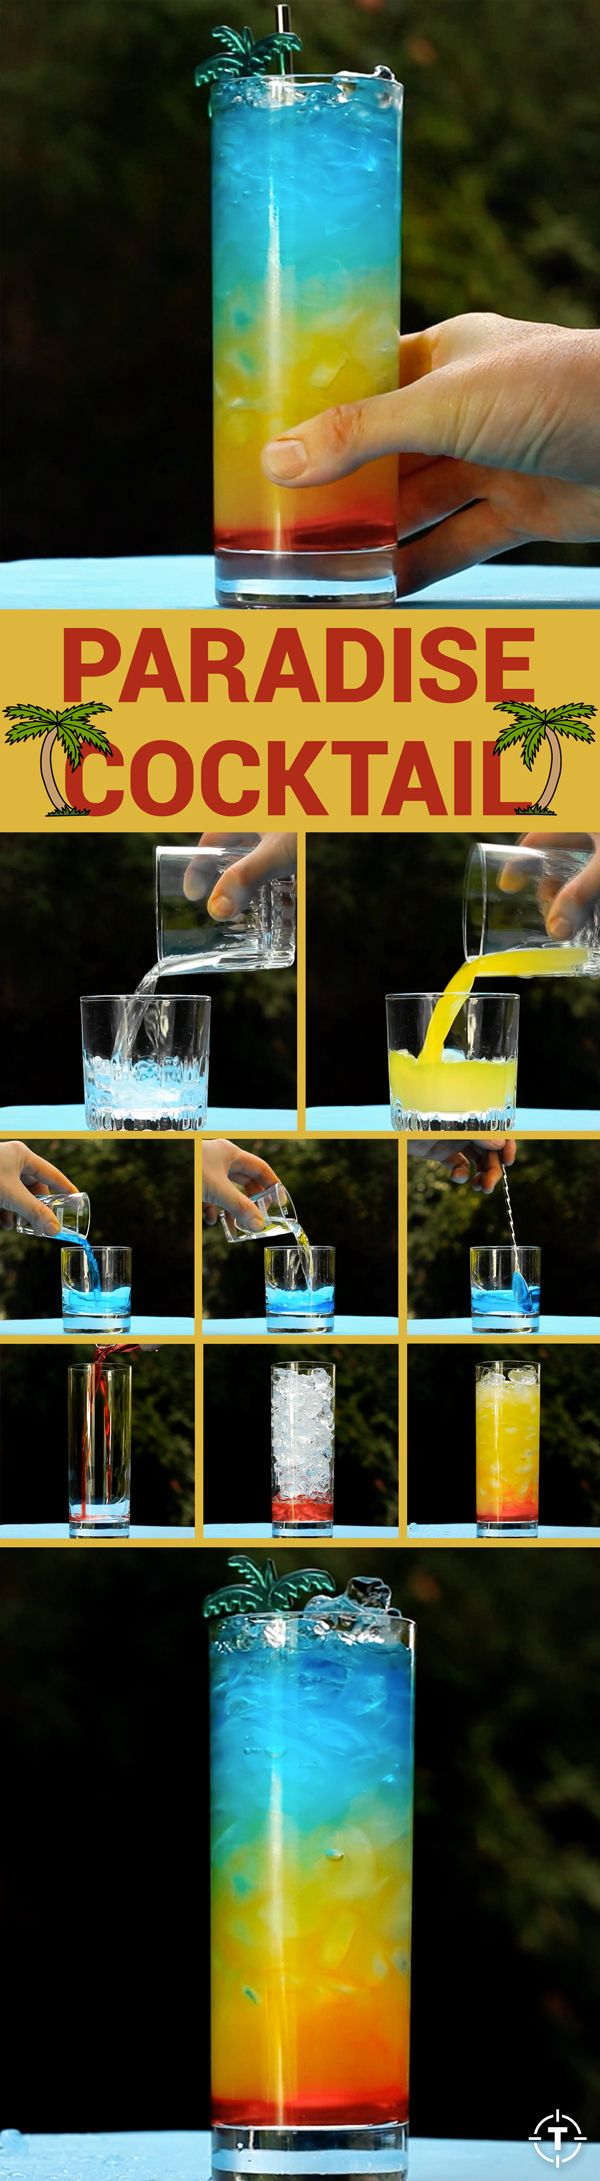 this paradise cocktail is crazy cool looking also delicious drinks drinks drinks pinterest. Black Bedroom Furniture Sets. Home Design Ideas